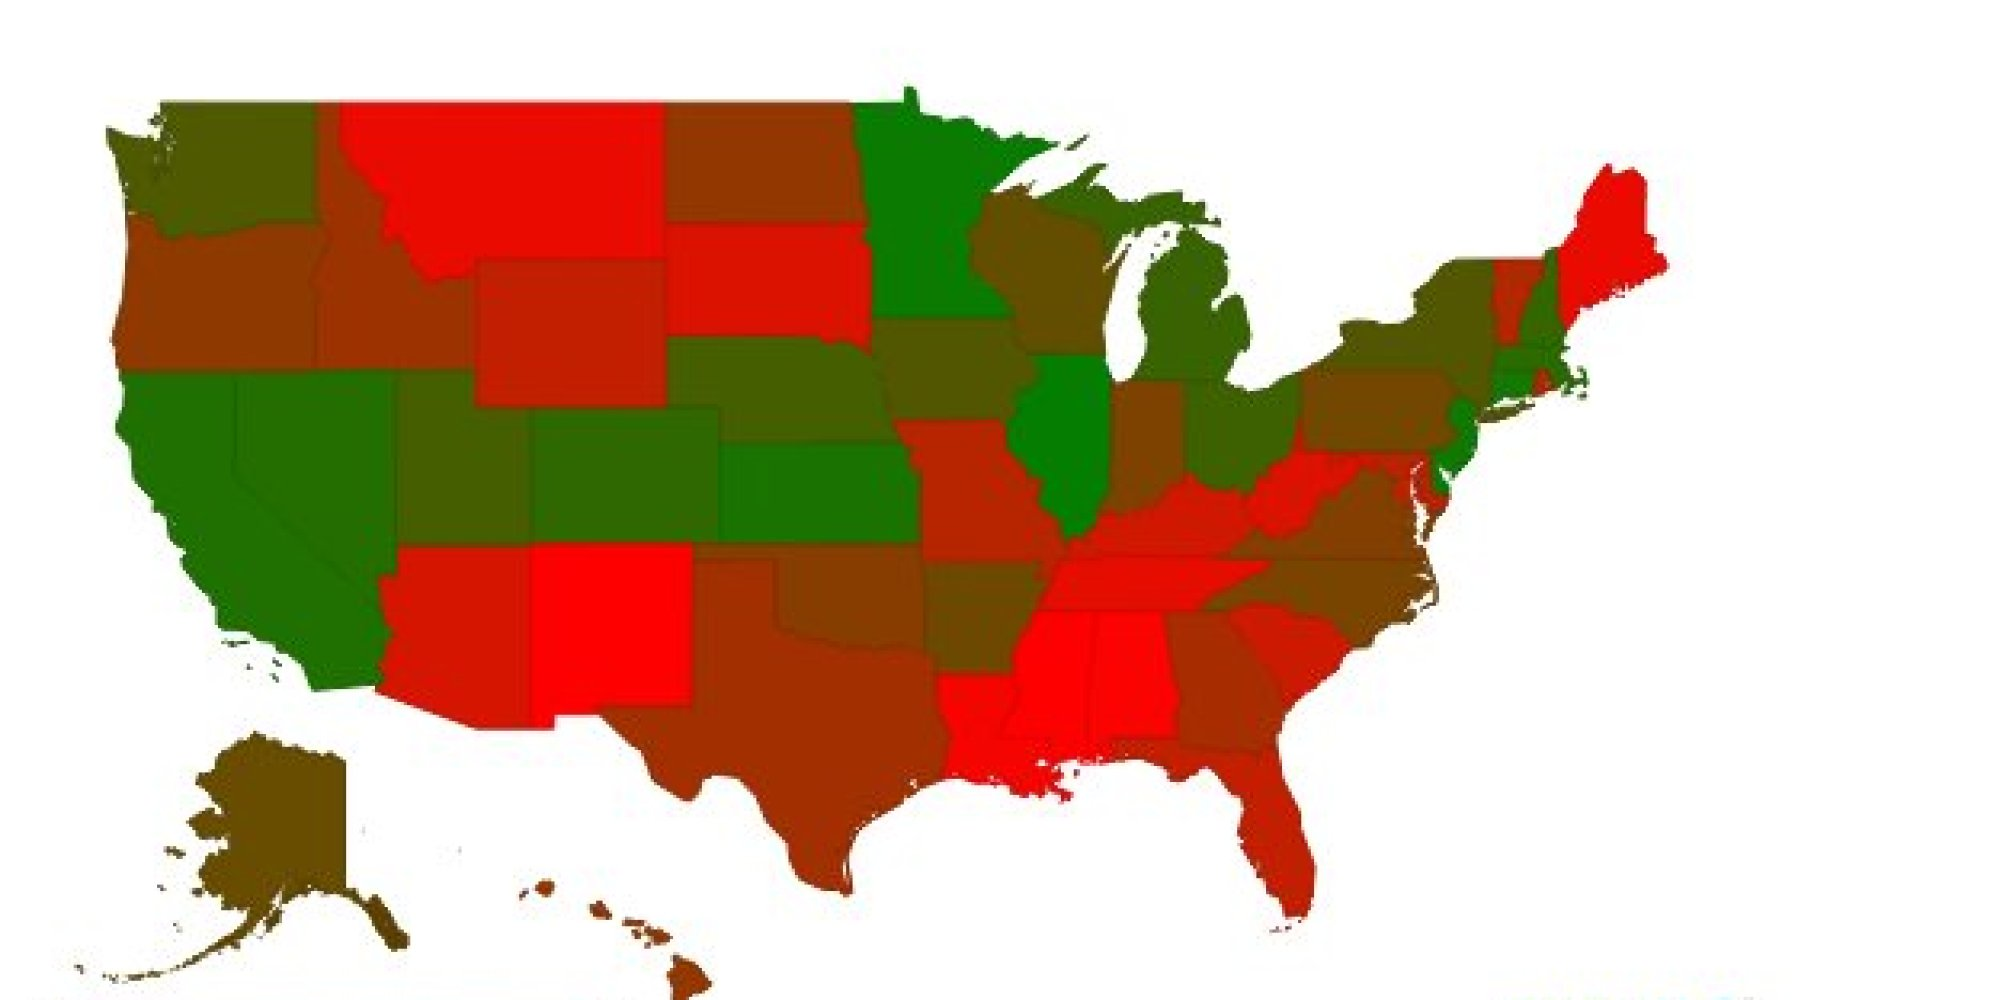 GOP States Are The Most Dependent On Government HuffPost - Us map democrat republican states 2014